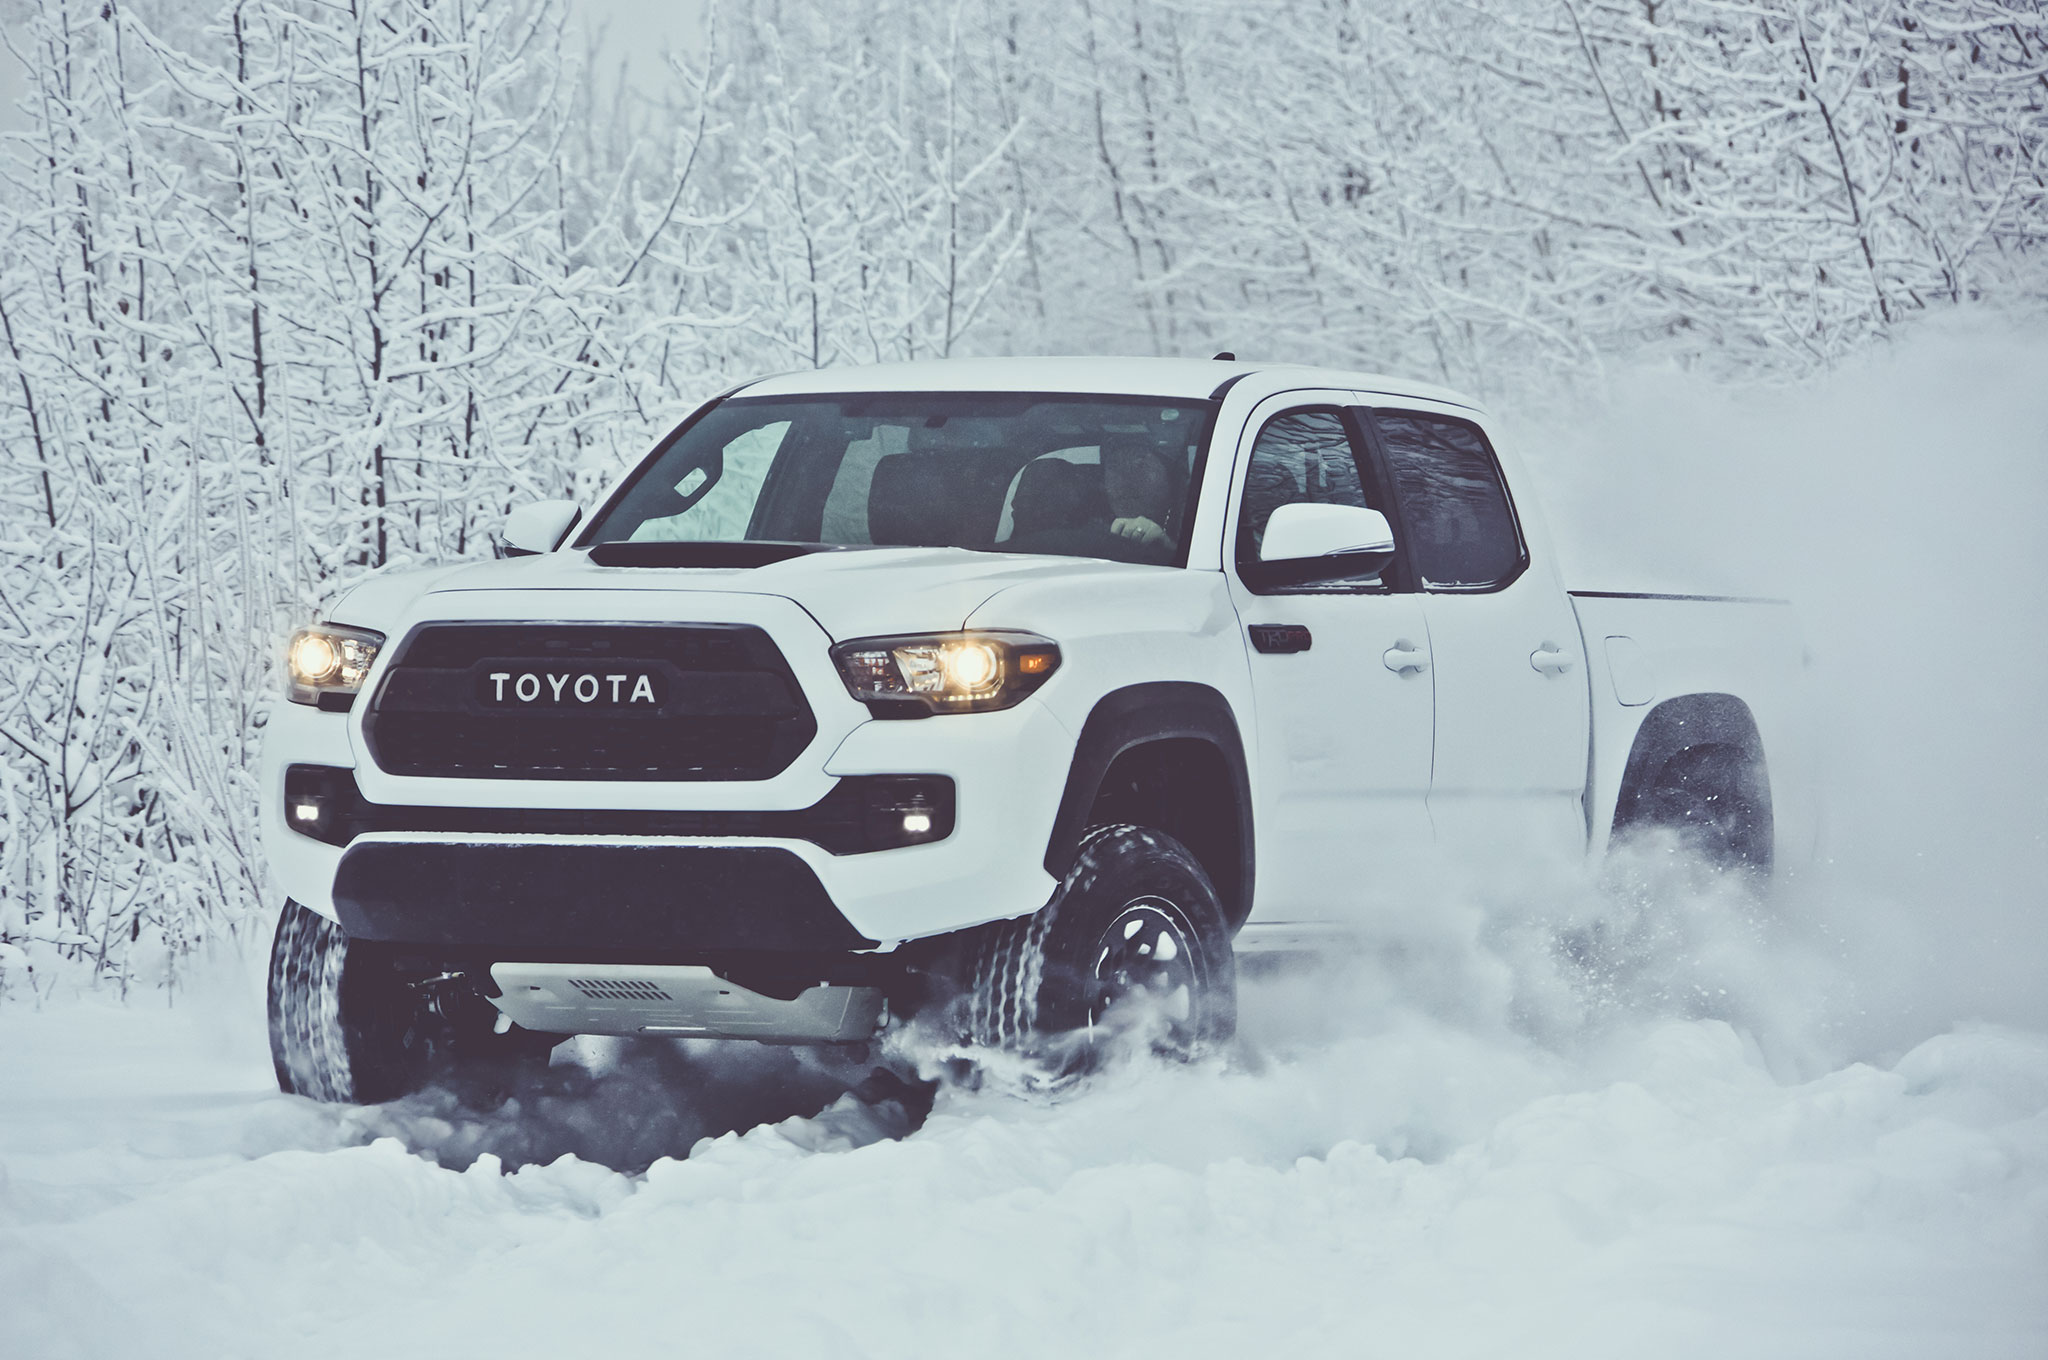 HQ Toyota Tacoma Wallpapers | File 355.5Kb